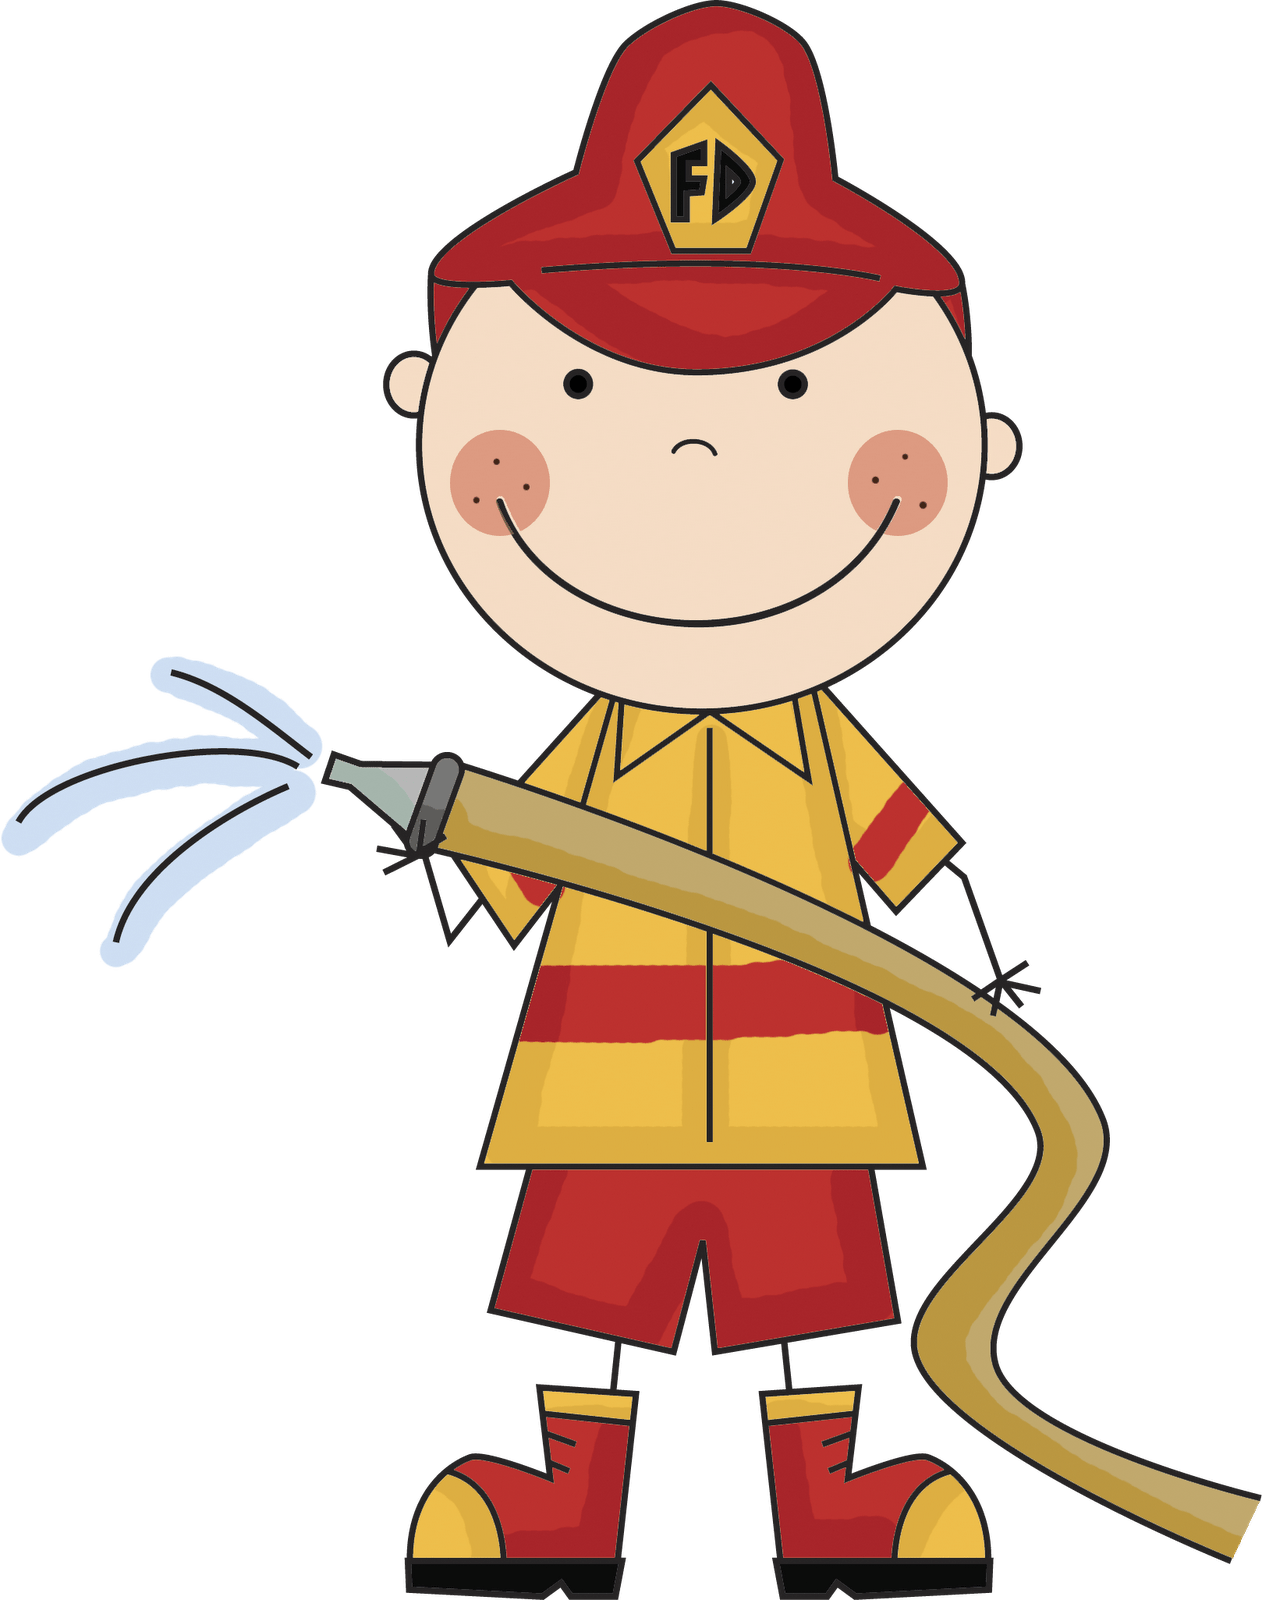 Safety at getdrawings com. Clipart fire person